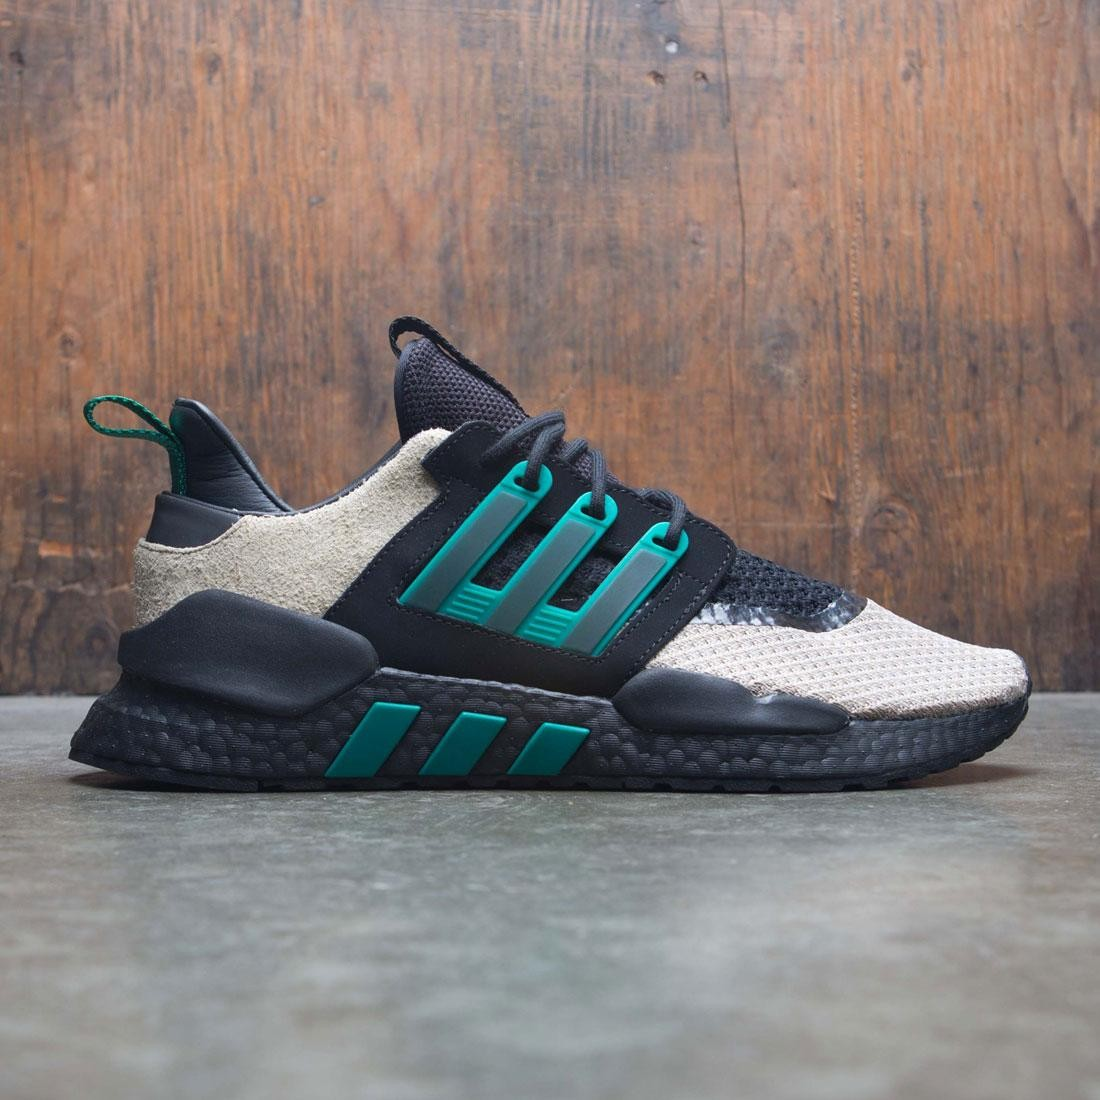 best sneakers 0a49e 54d66 Adidas Consortium x Packer Shoes Men EQT 91/18 (black / sub green / blanch  cargo)